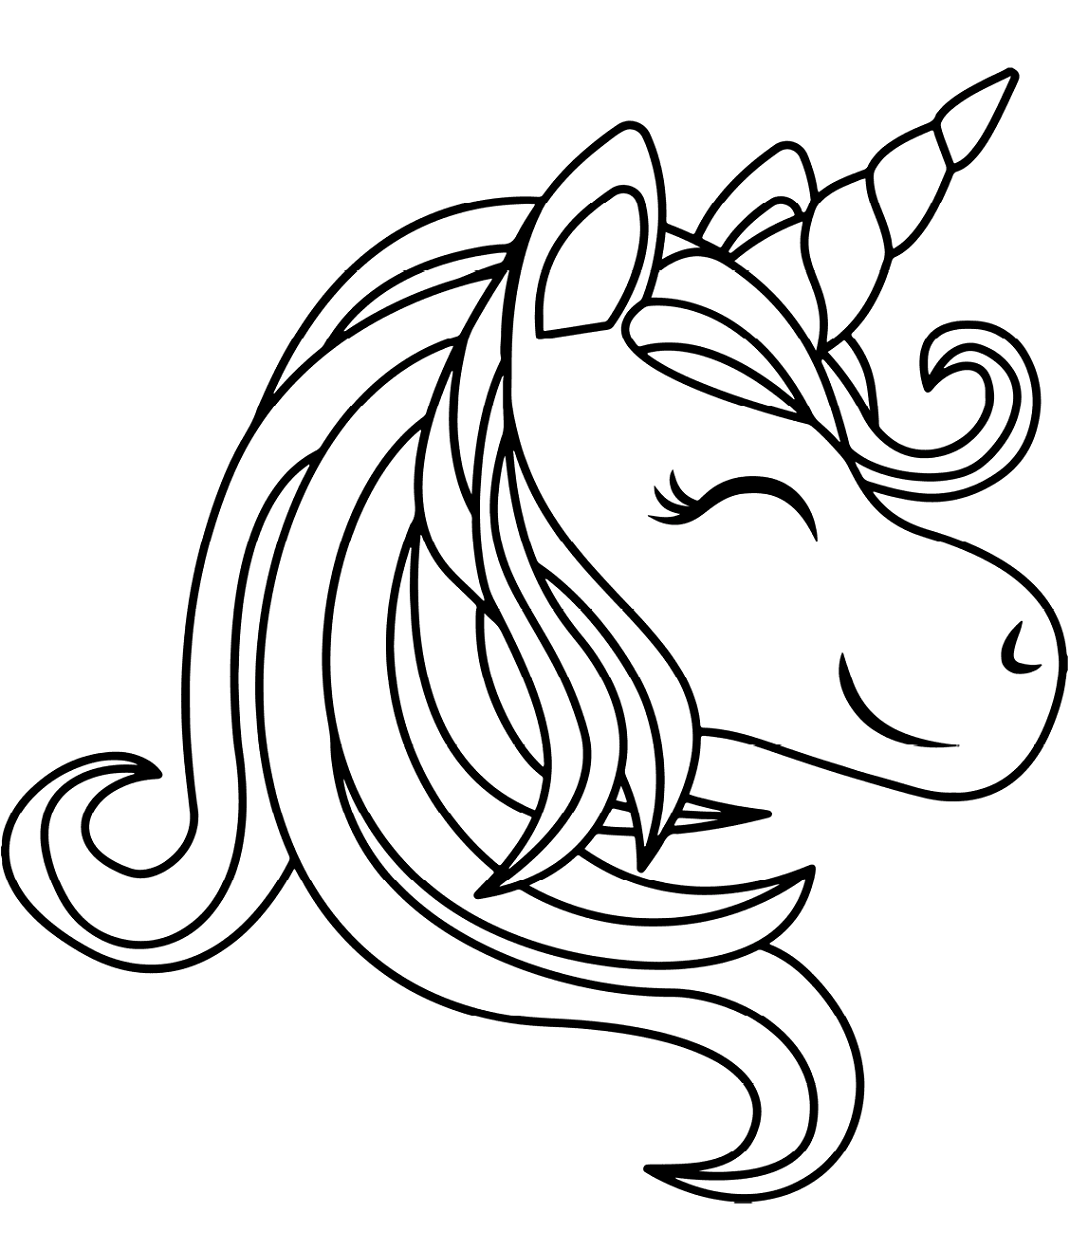 unicorn printables unicorn outline clipartioncom unicorn printables